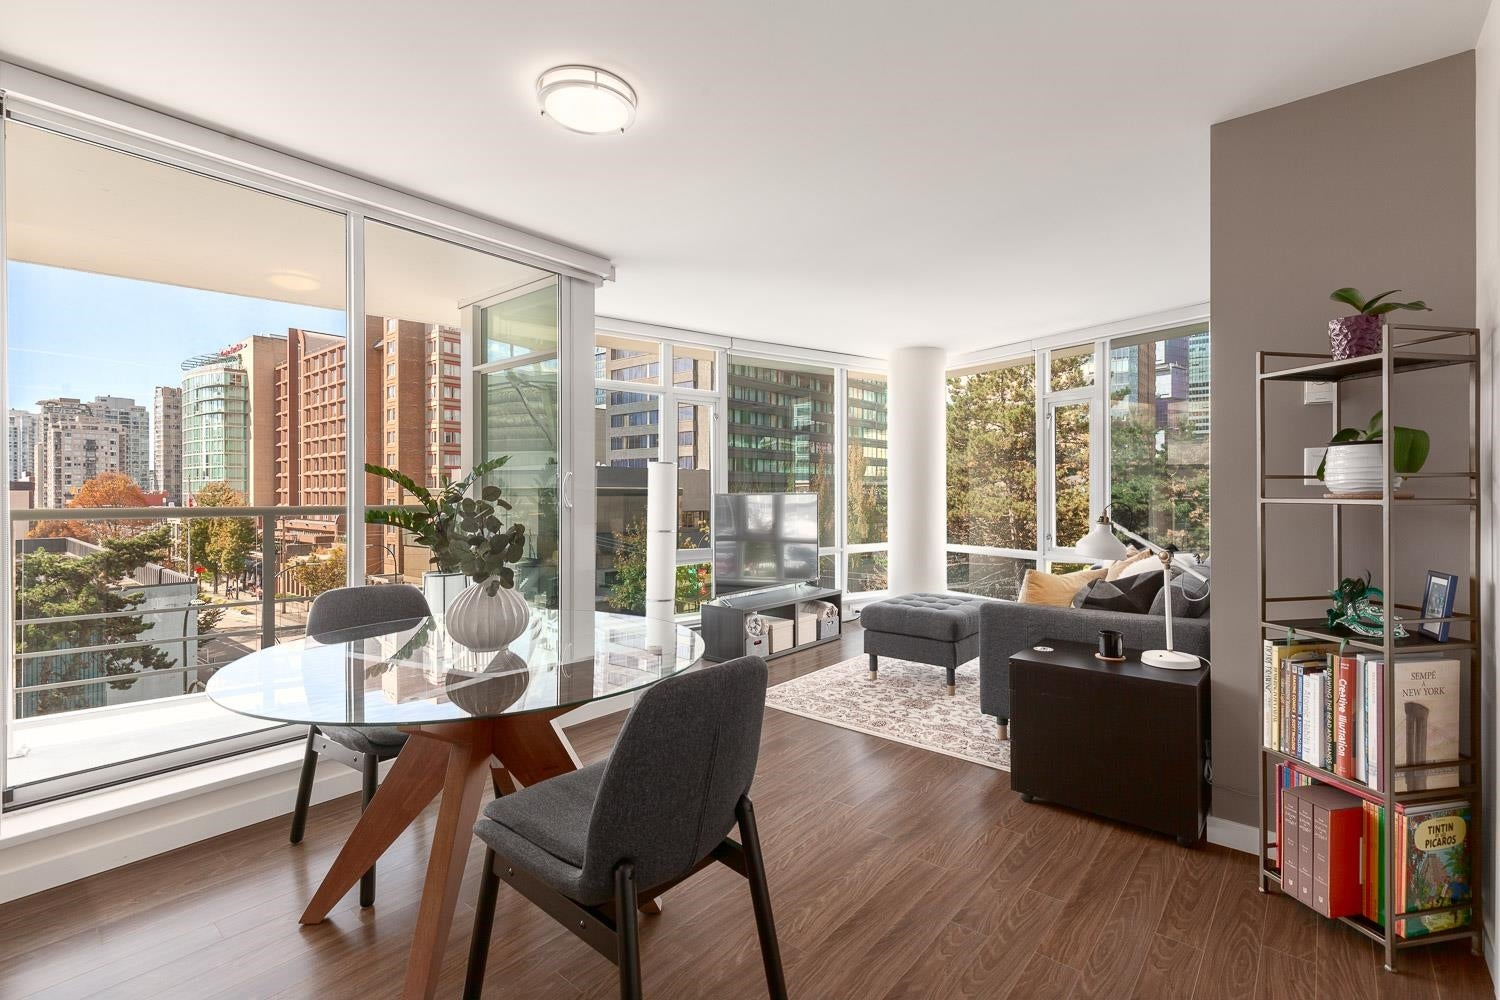 607 161 W GEORGIA STREET - Downtown VW Apartment/Condo for sale, 2 Bedrooms (R2619102) - #1